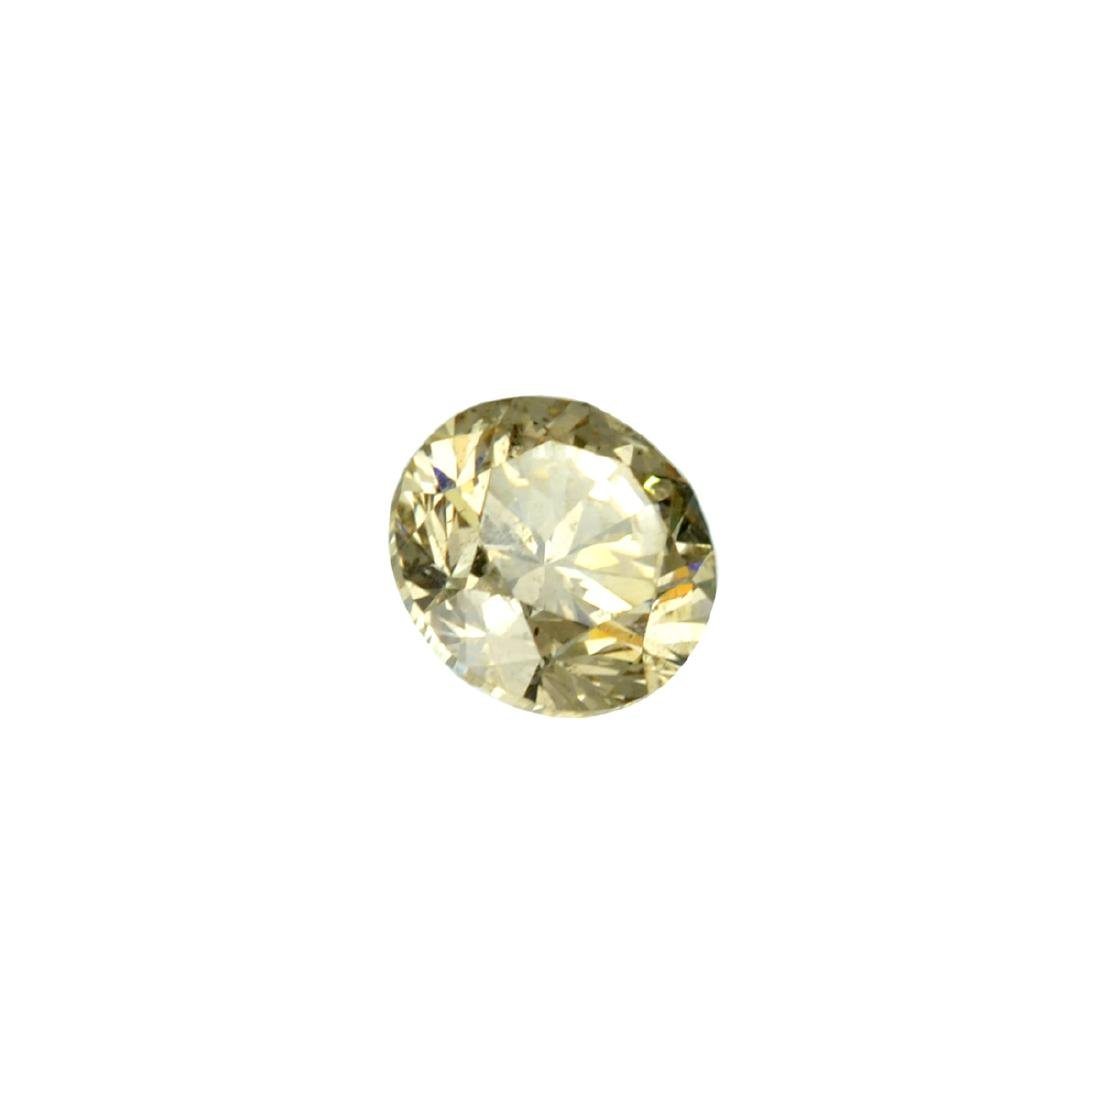 Fine Jewelry GIA Certified 0.77CT Brilliant Round Cut